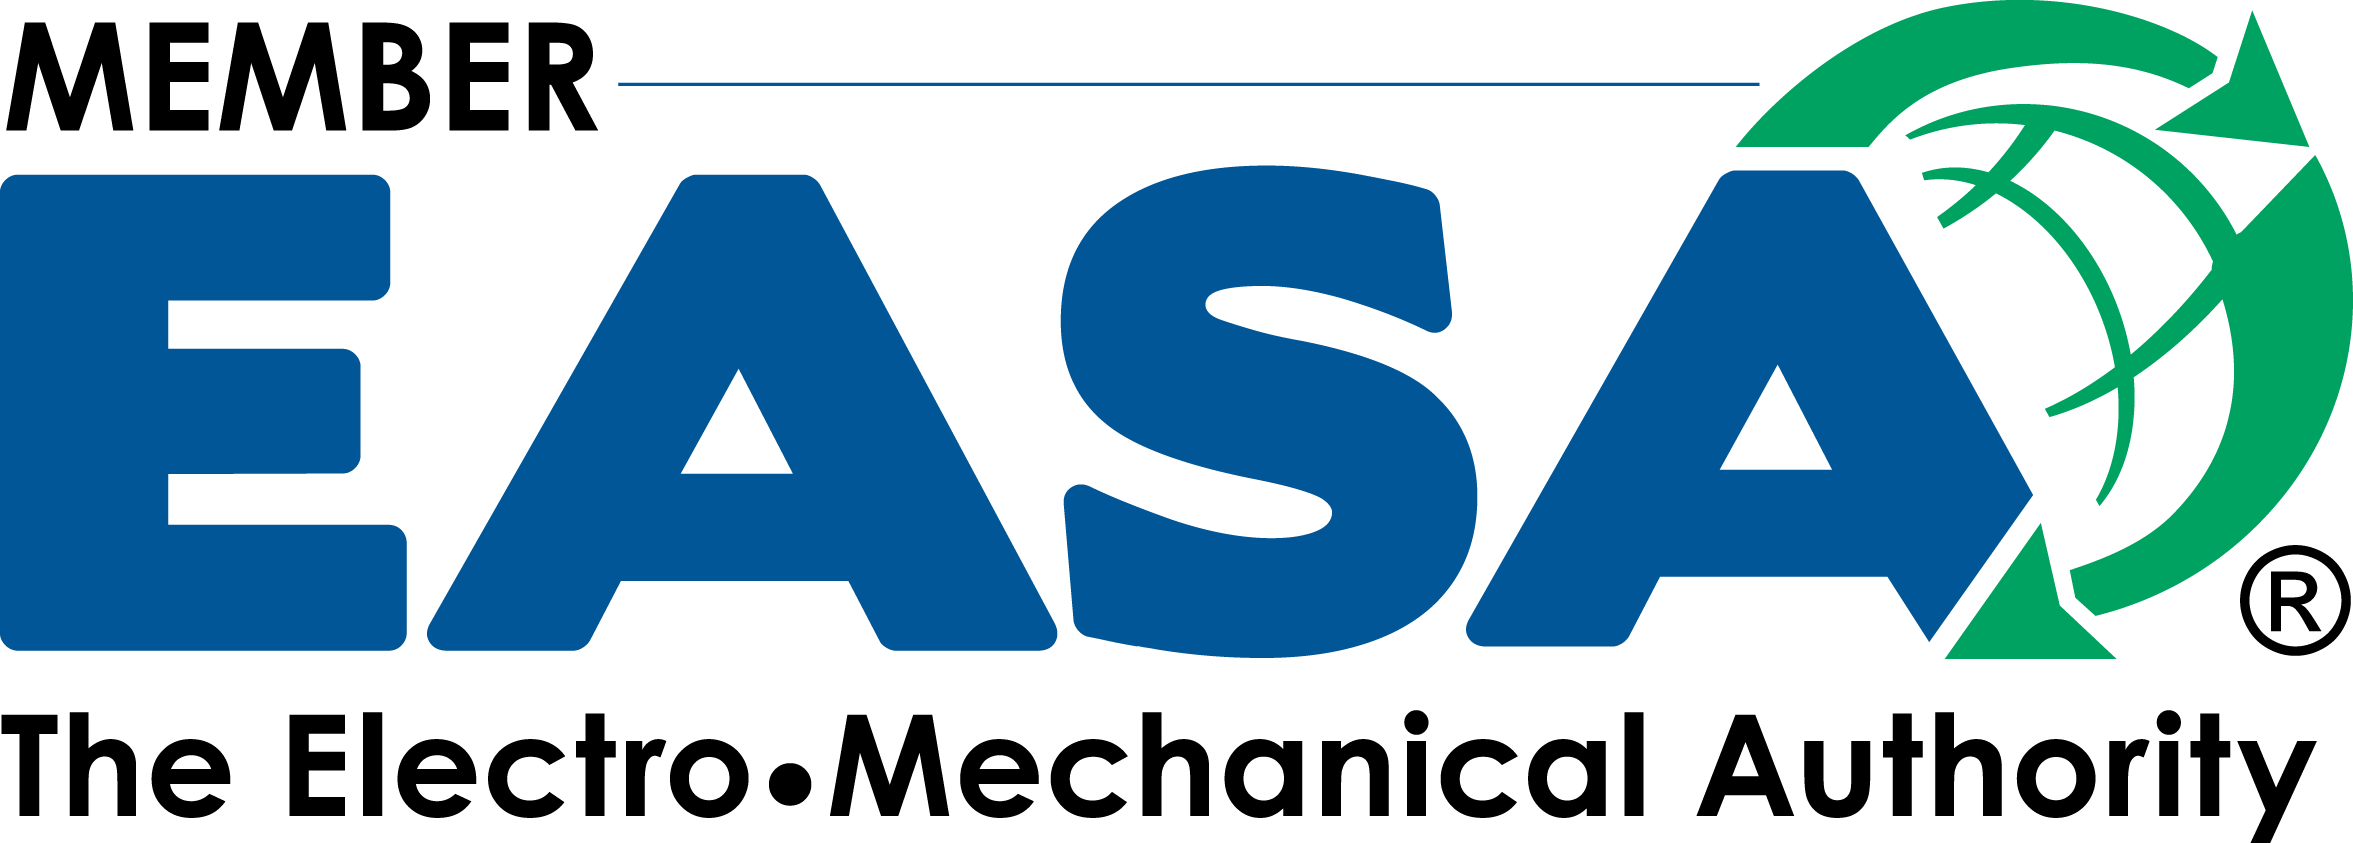 Electrical Apparatus Service Association.png